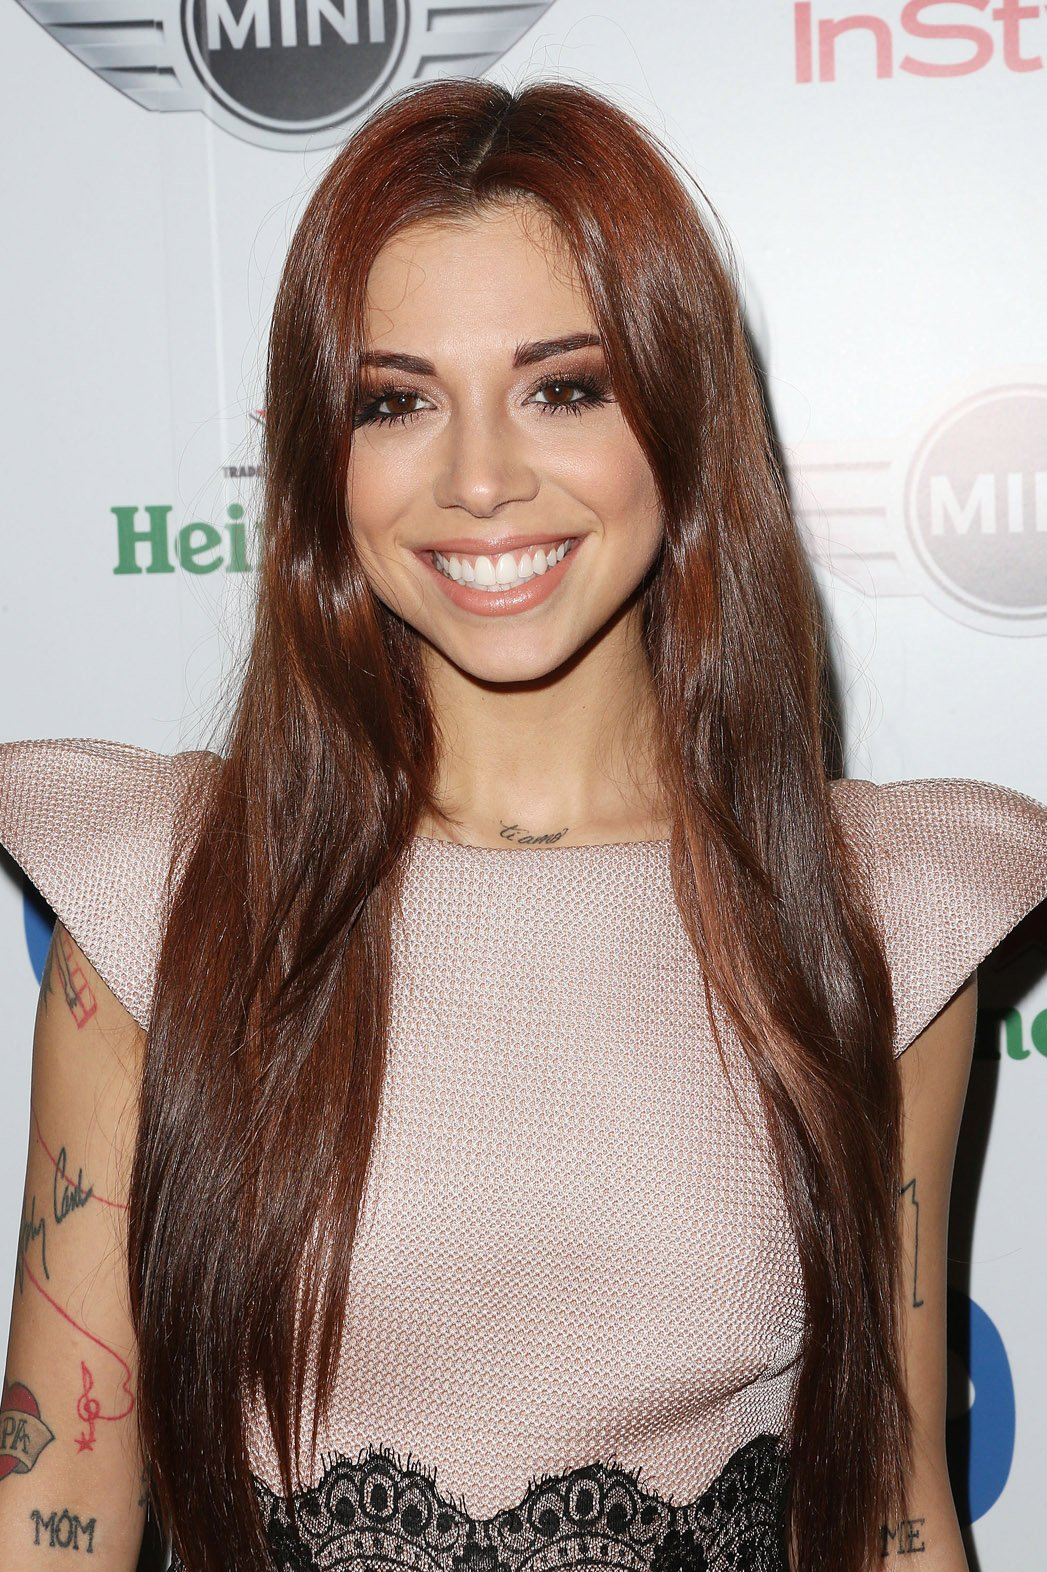 christina perri hair 2014 wallpapers Desktop Backgrounds for HD 1047x1572